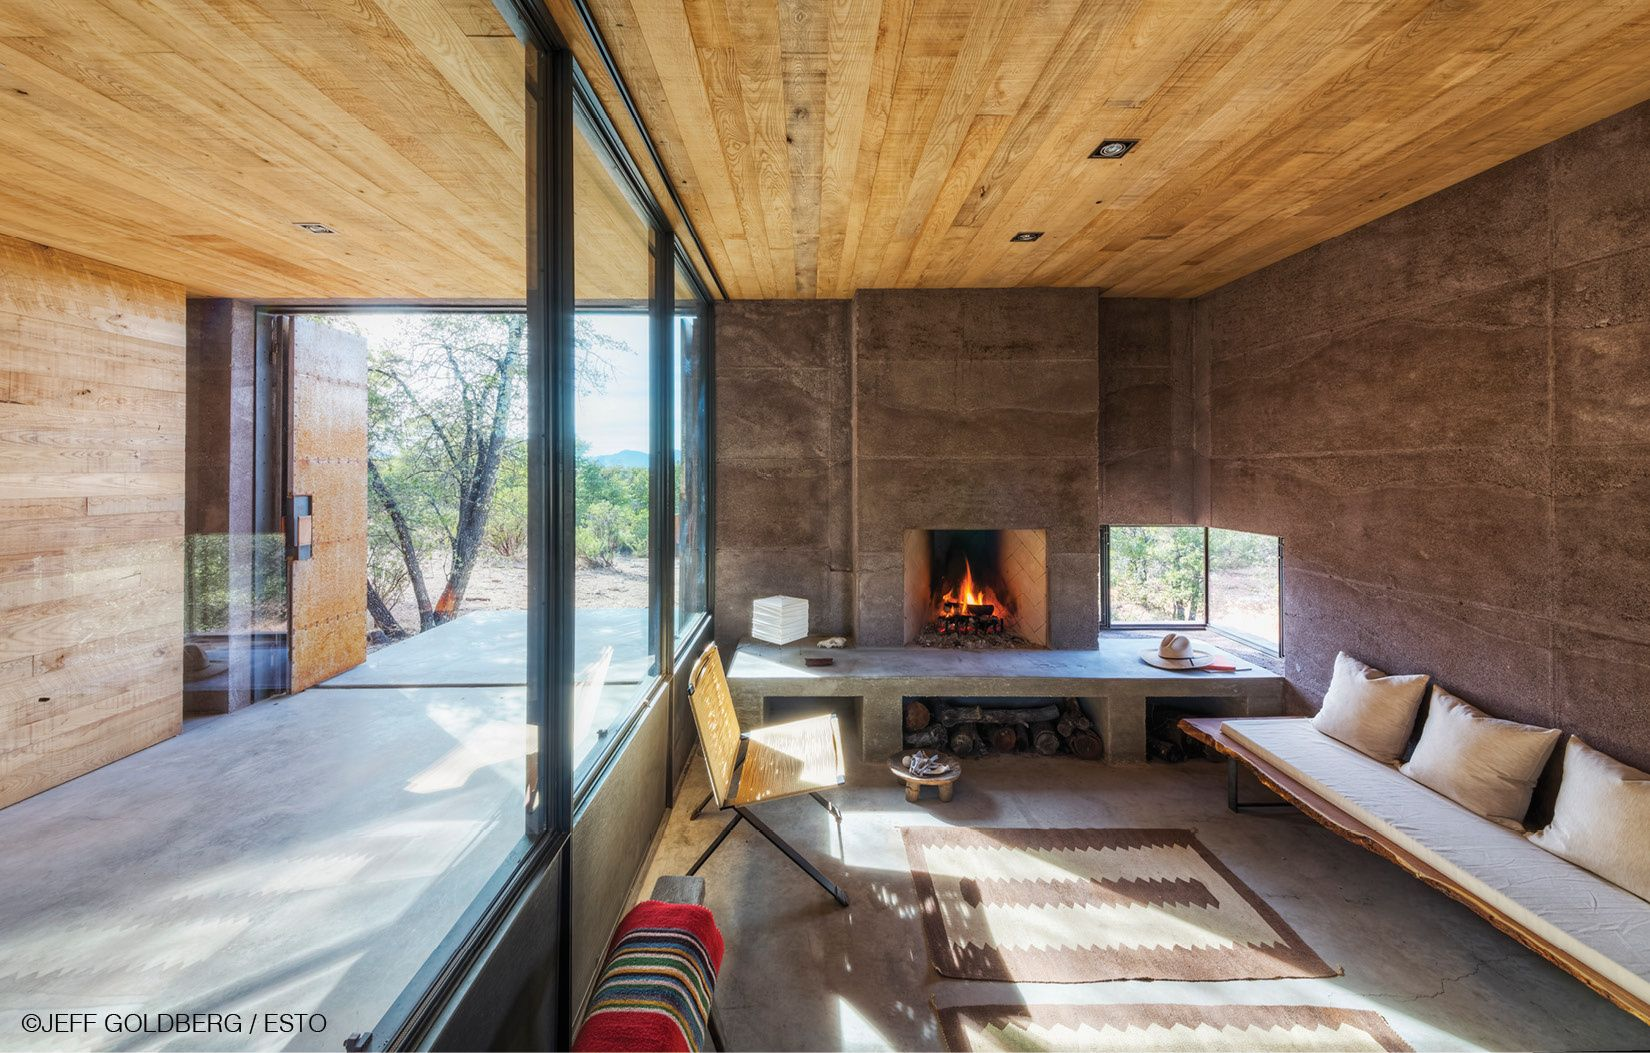 Architecture, DUST, Casa Caldera, Tucson, Arizona, Design, Residential,  Modern, Architects, Morning, Sunrise, Scoria, Lava Crete, Reclaimed Wood,  Sassafras, ...